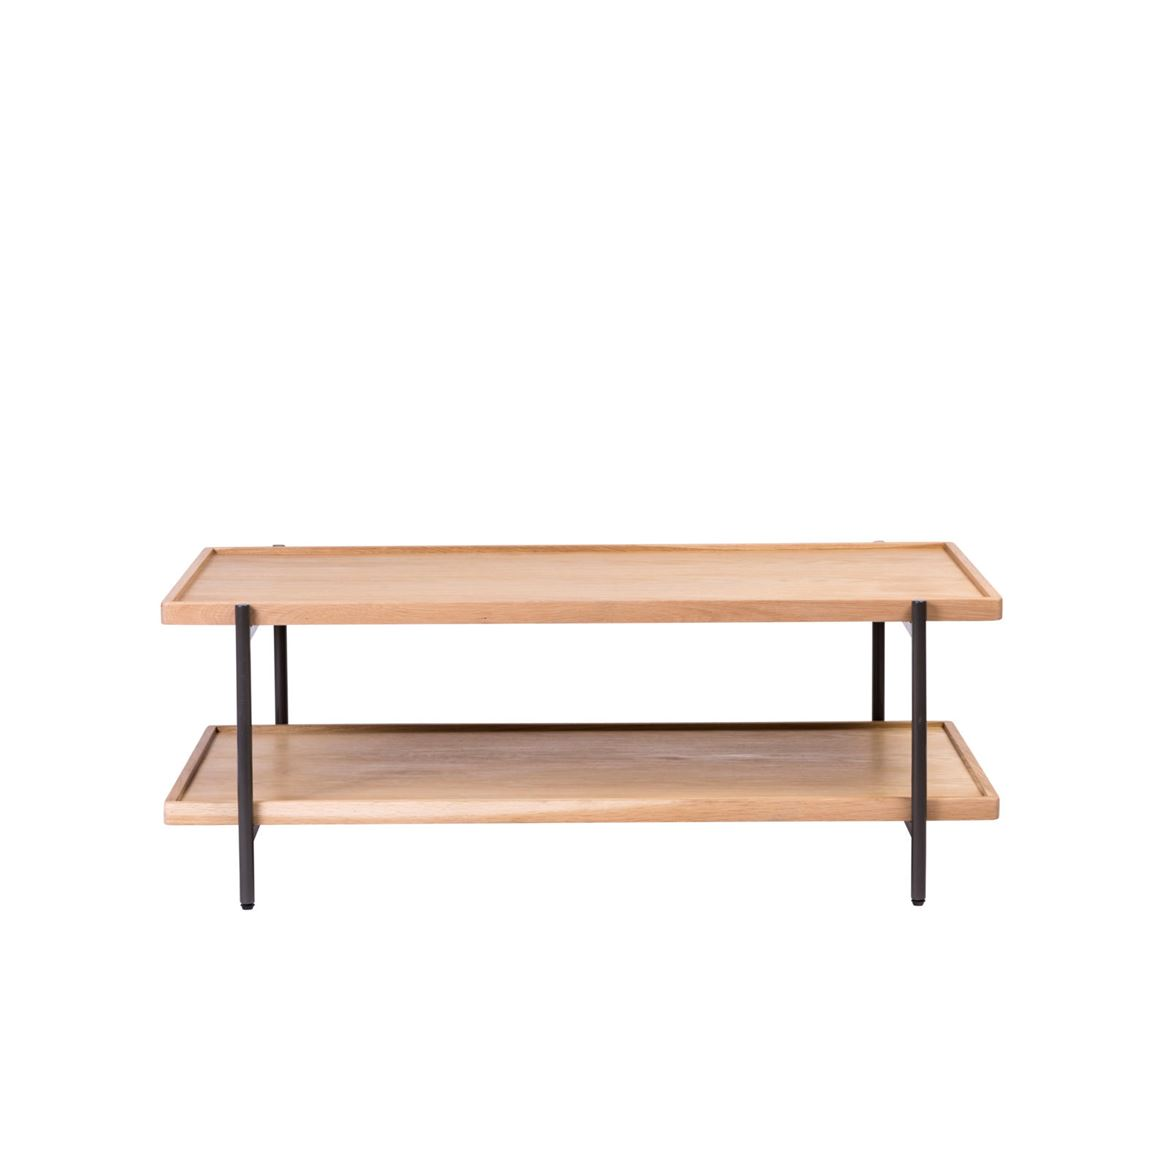 DECKER Salontafel naturel H 40 x B 60 x L 110 cm_decker-salontafel-naturel-h-40-x-b-60-x-l-110-cm